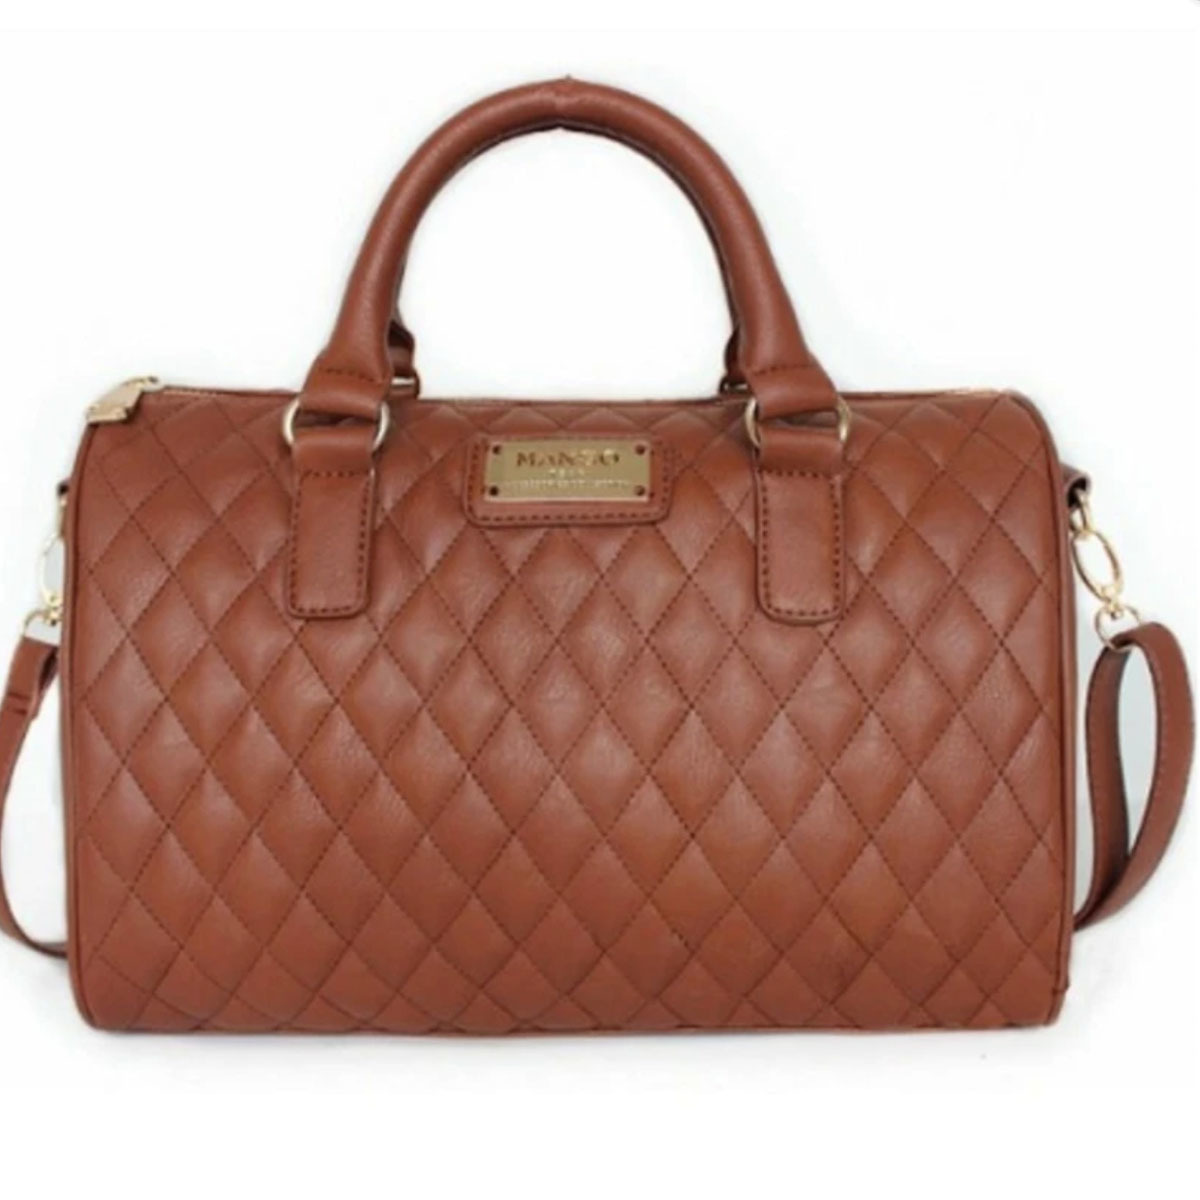 OOTD28 MANGO Quilted Bowling Bag Top Quality Premium Tote Handbags. ‹ ›